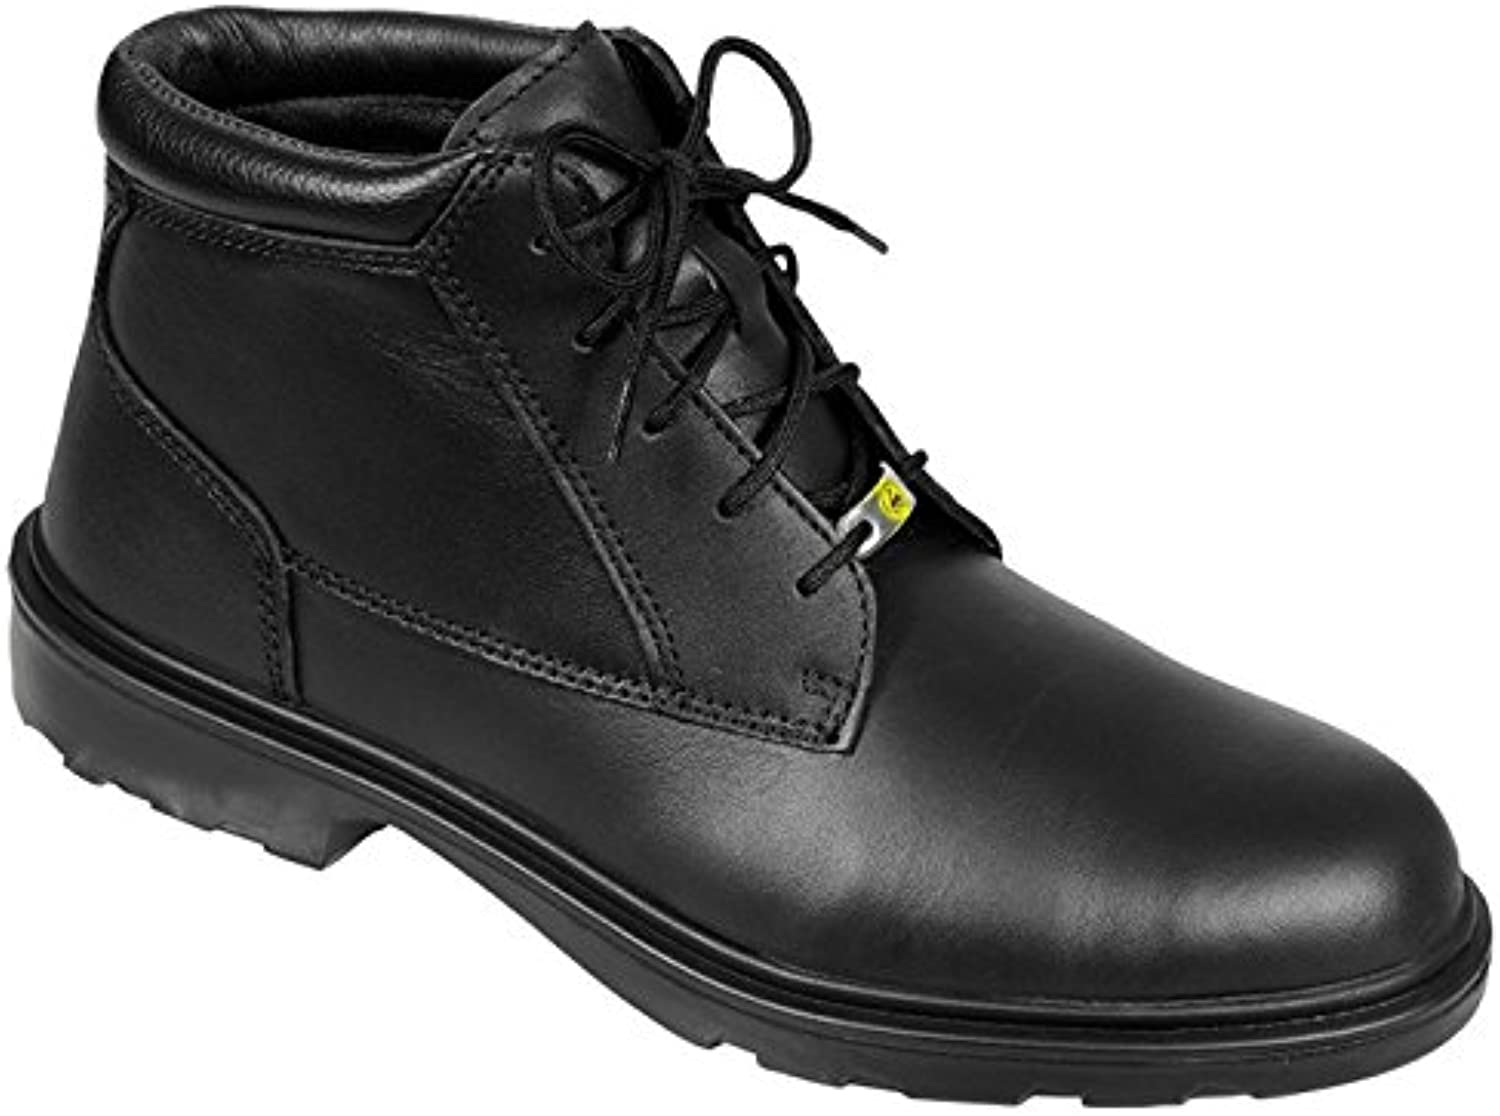 Elten 76301-40 Size 40 ESD S3 Adviser Mid  Safety shoes - Multi-Colour